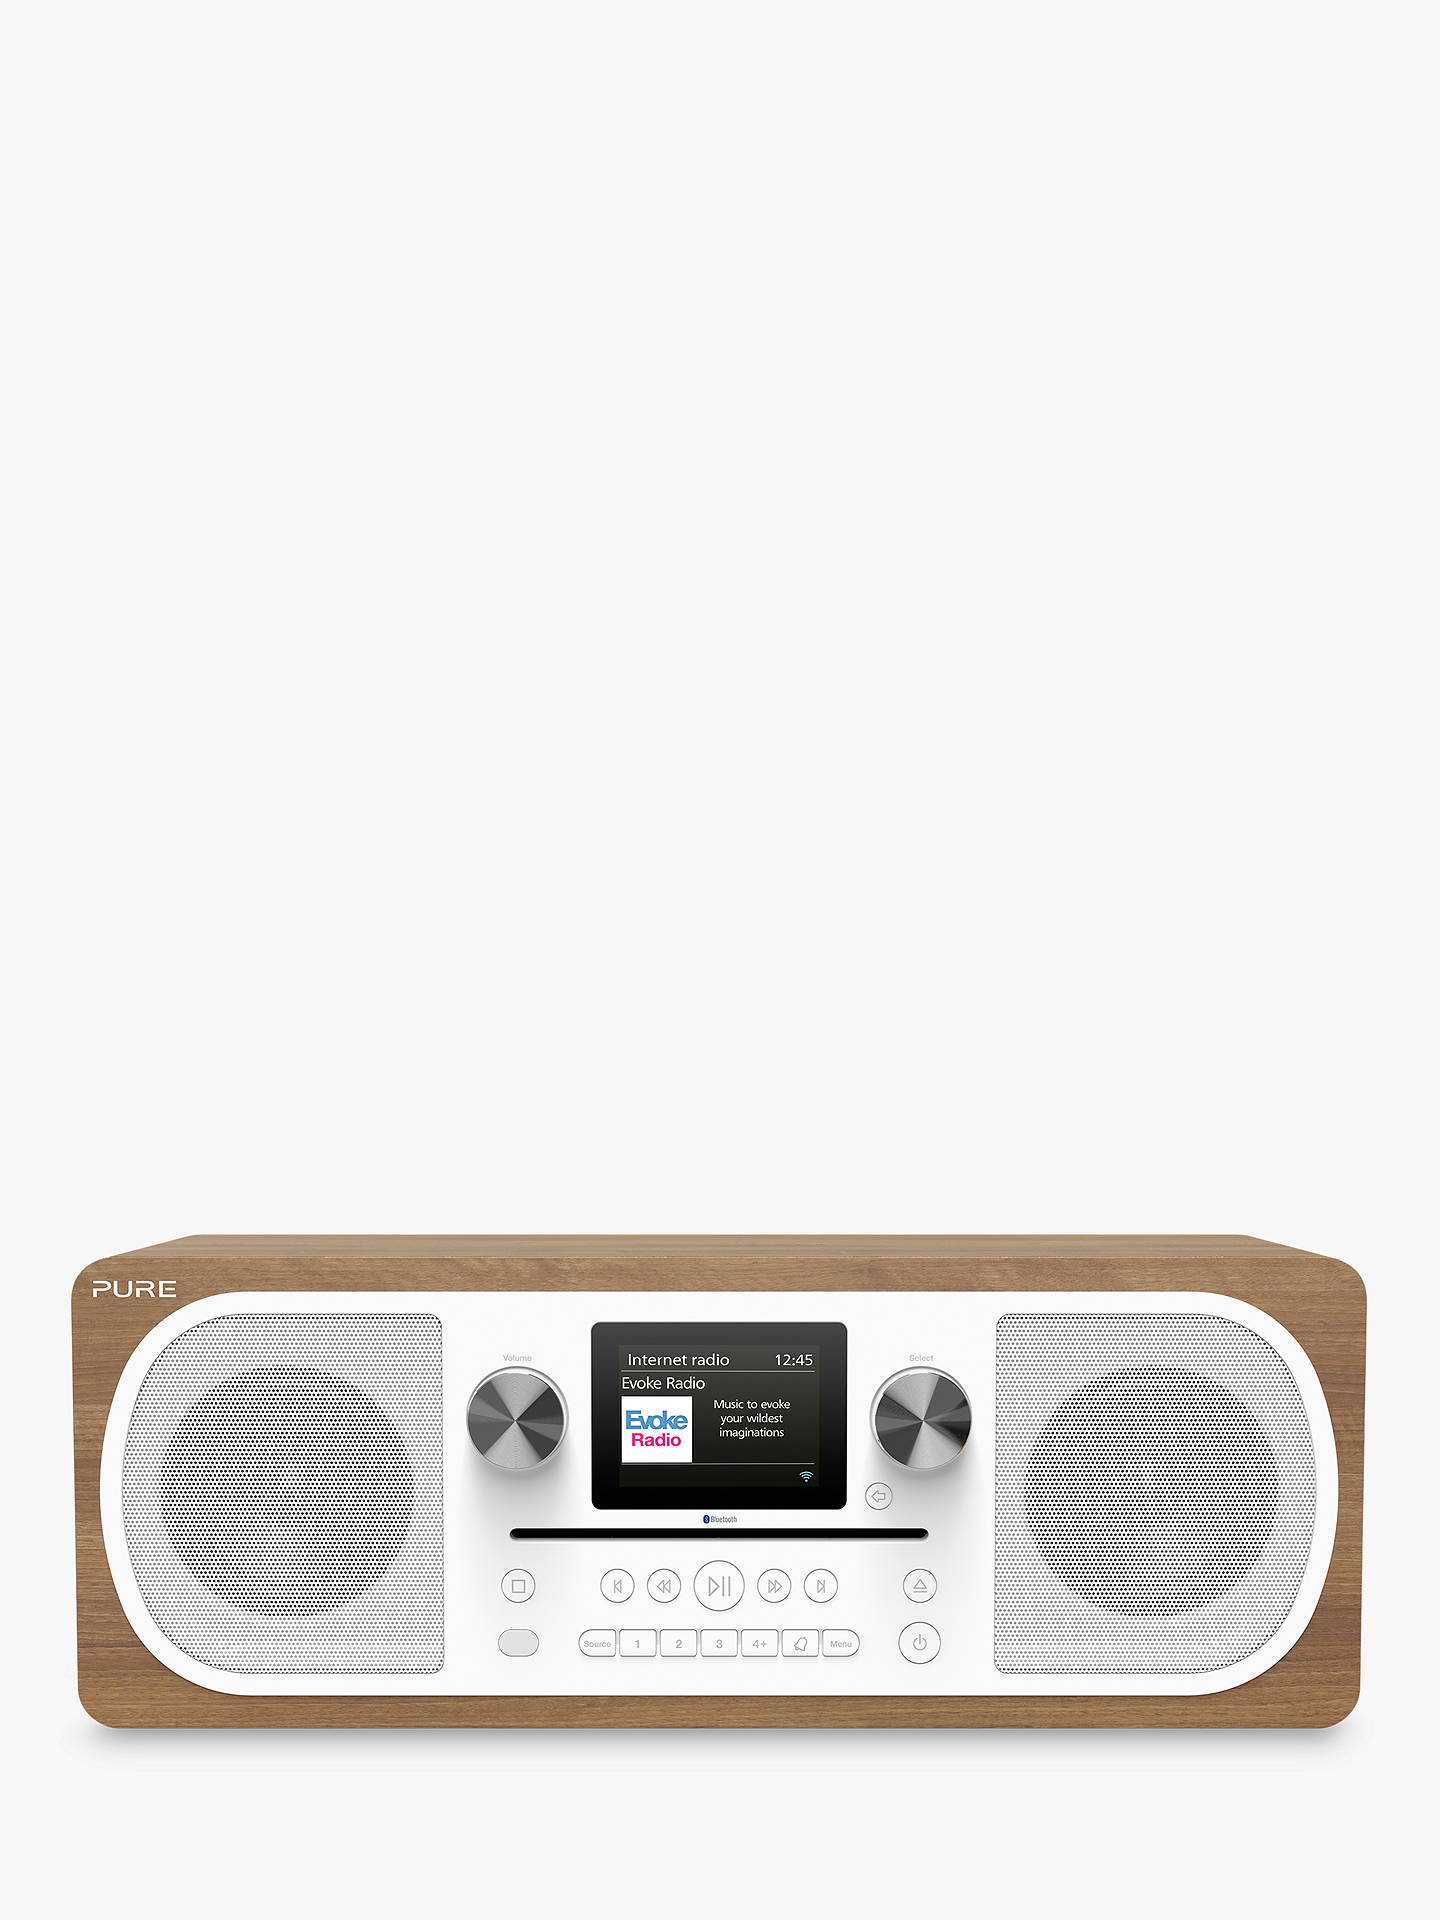 Pure Evoke C-F6 DAB+/FM Bluetooth Internet Stereo All-In-One Smart Music  System With Spotify Connect, Colour Display & Remote Control, Walnut